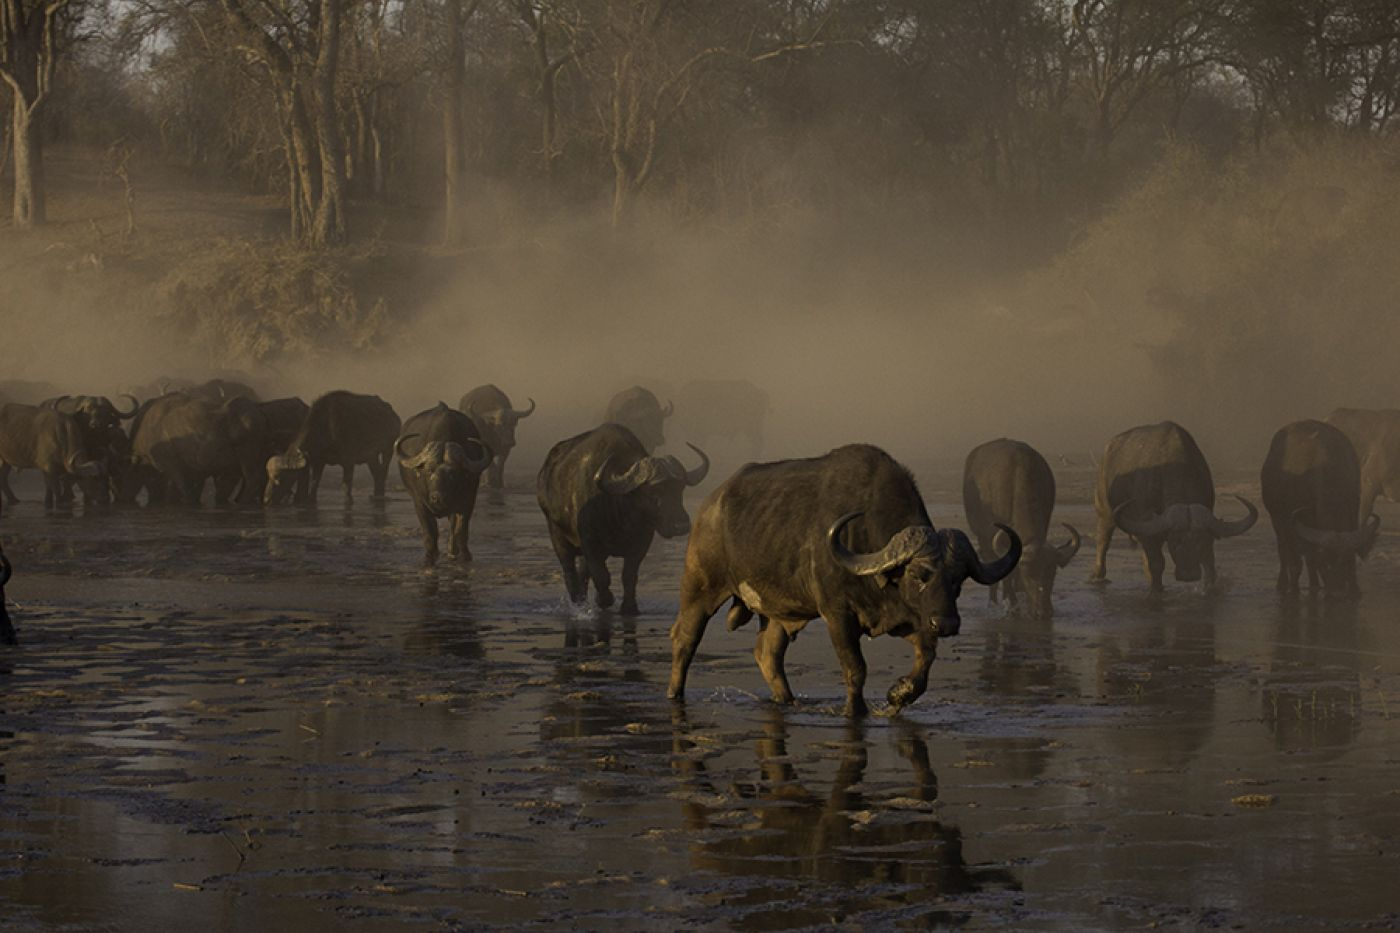 A Herd Of Buffalo Entering The Sand River During Winter